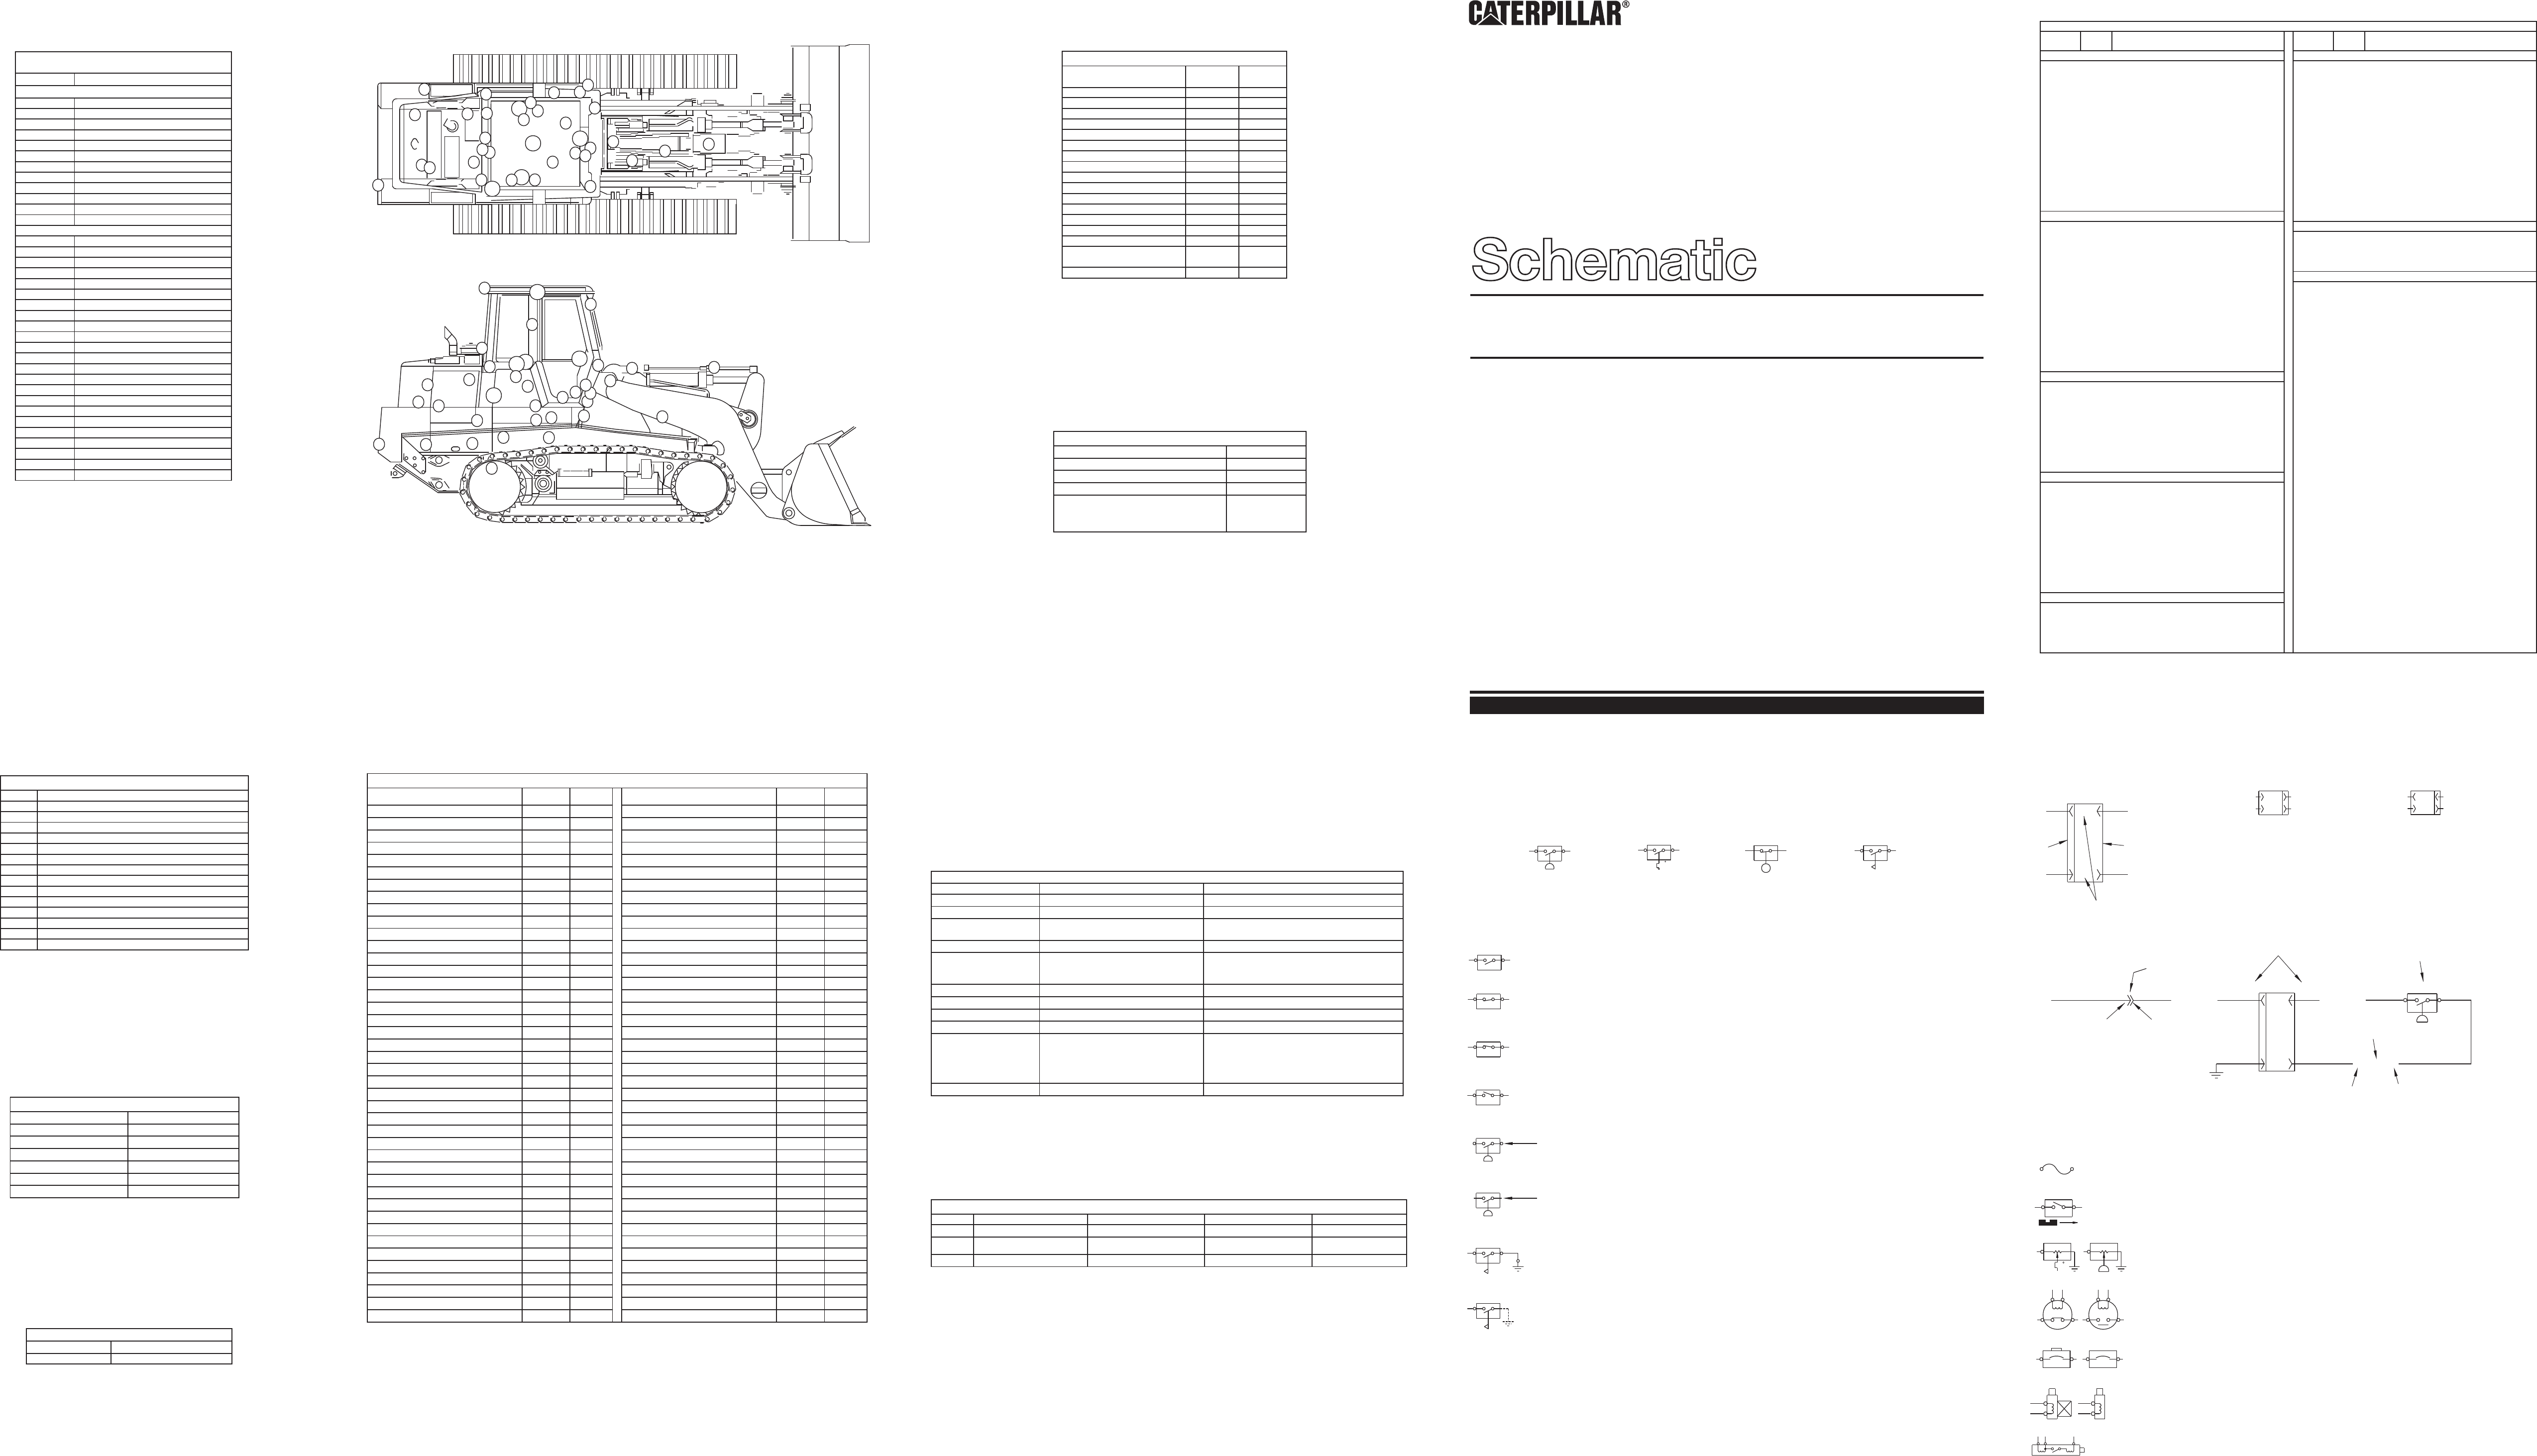 953C TRACK-TYPE LOADER ELECTRICAL SYSTEM SCHEMATIC | CAT